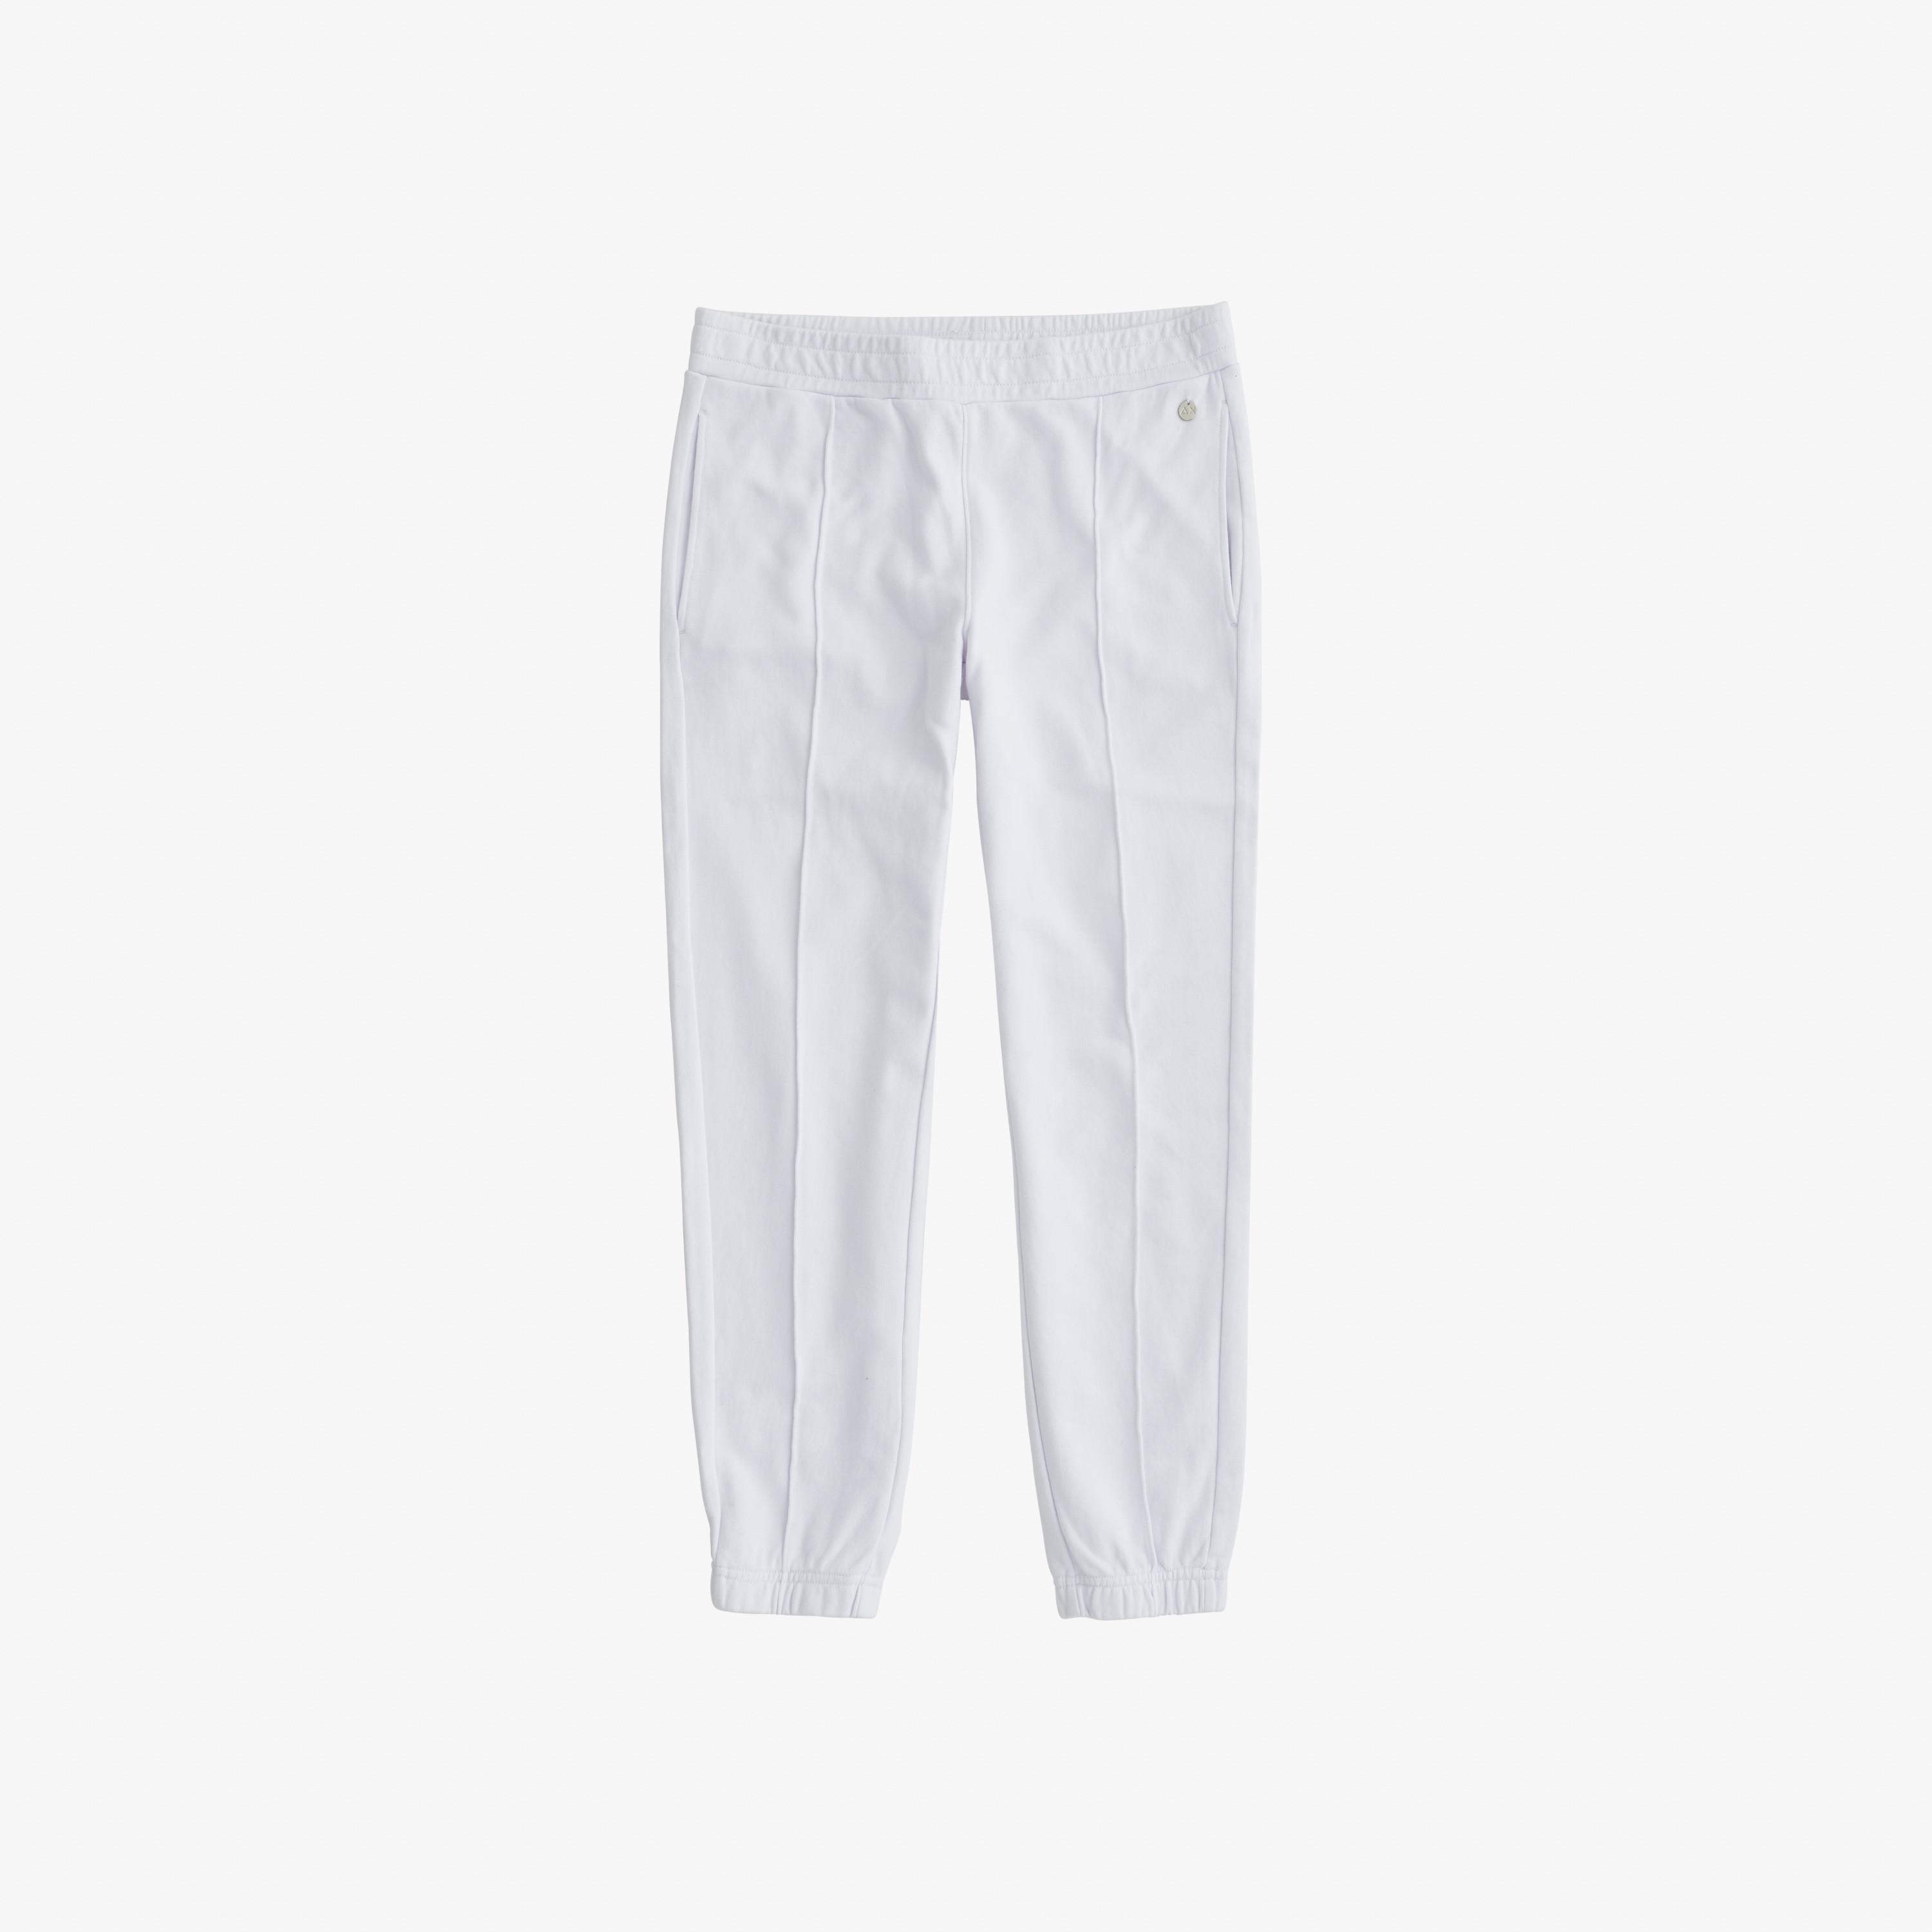 PANT BAGGY SOLID COTTON FL. WHITE